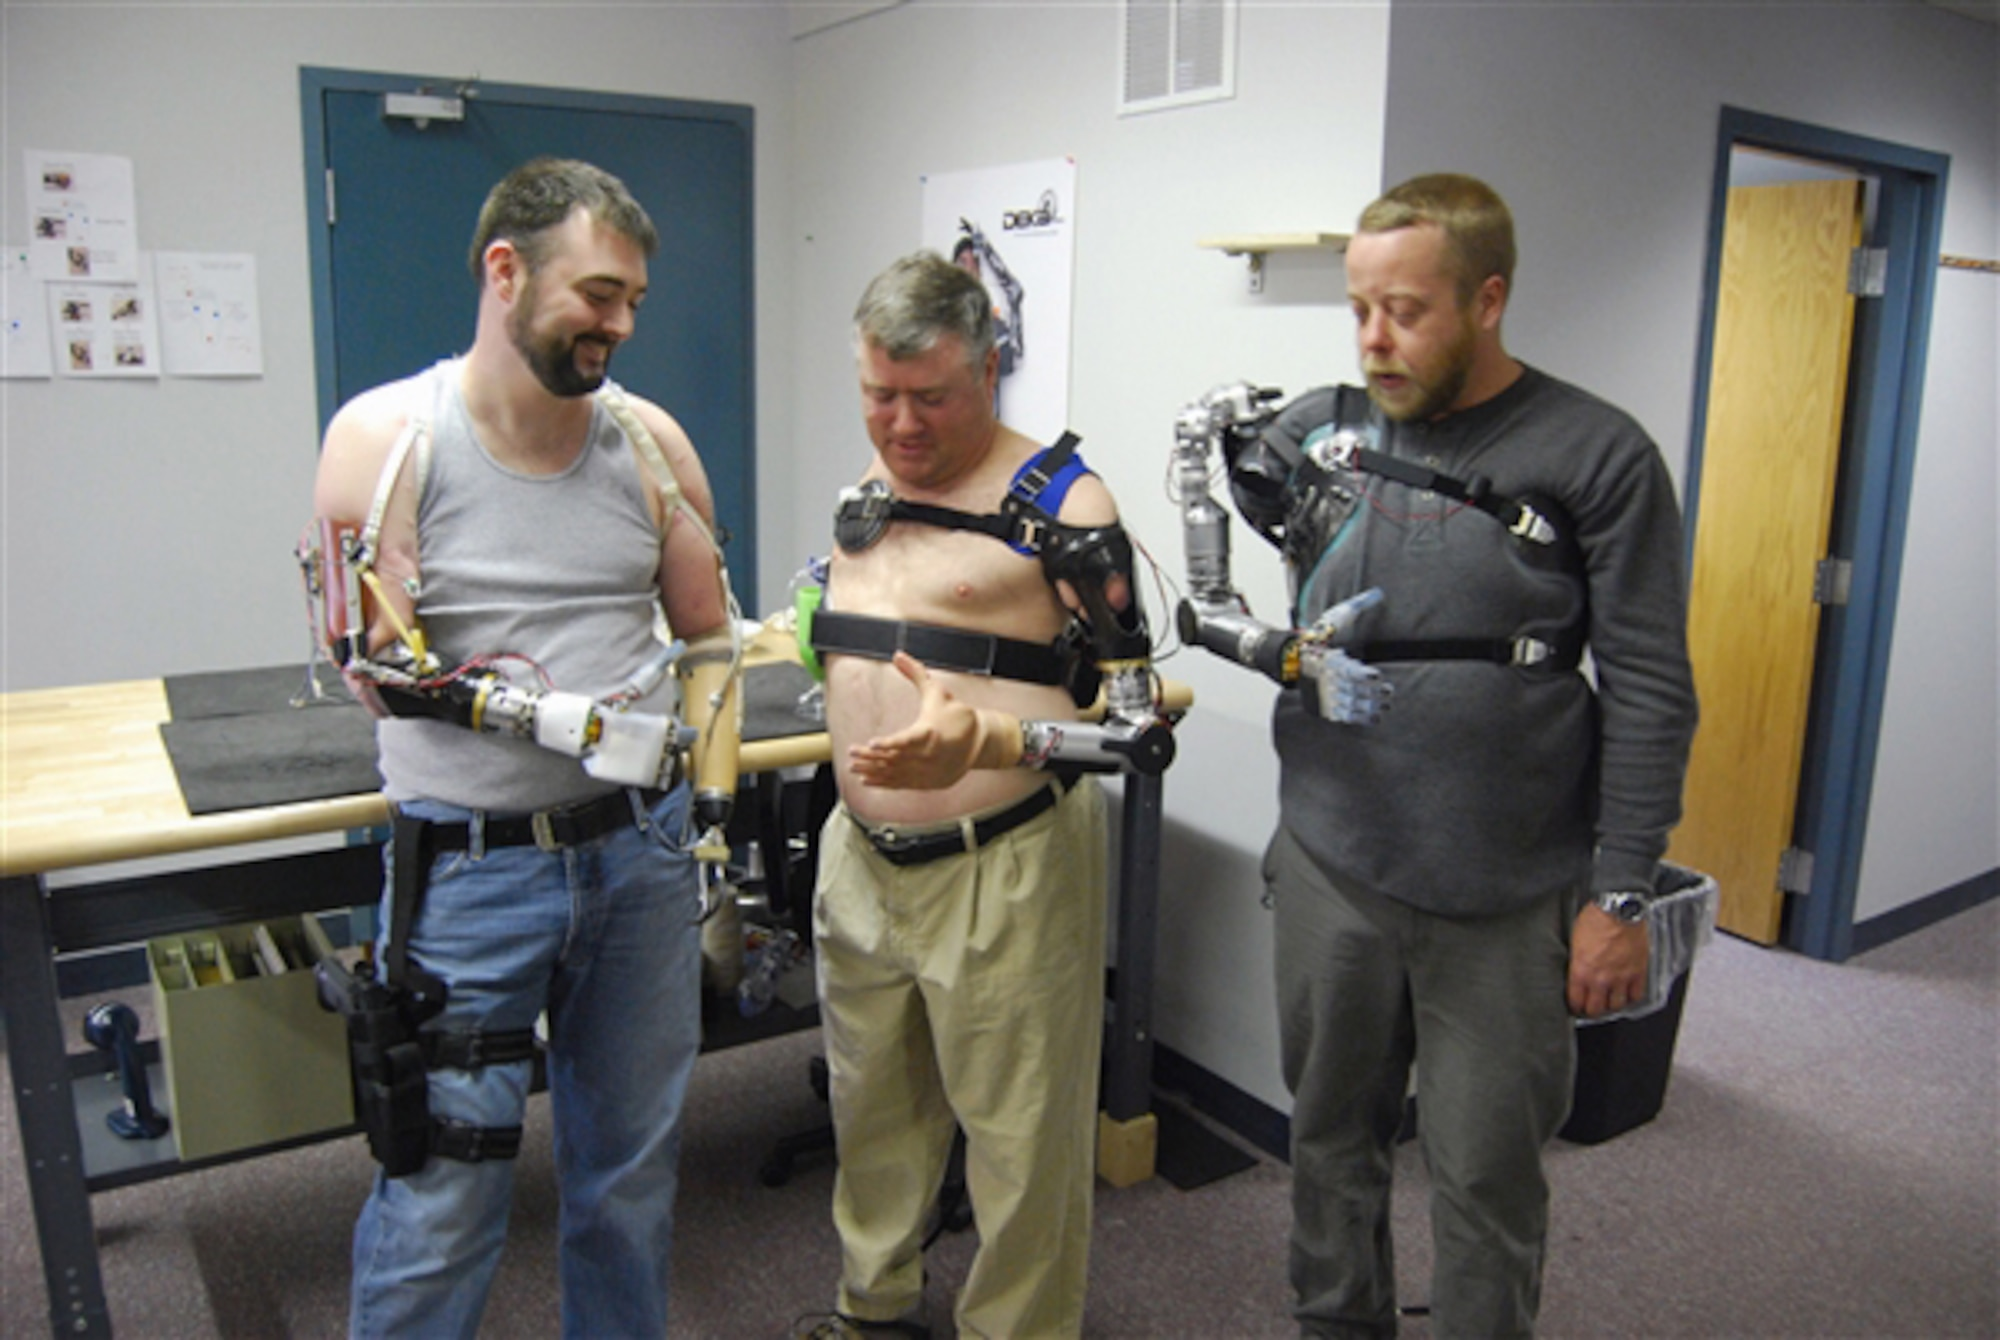 Users wear and control, without surgery, an advanced prosthetic arm developed under the Defense Advanced Research Projects Agency's Revolutionizing Prosthetics program in 2007. (Courtesy photo)